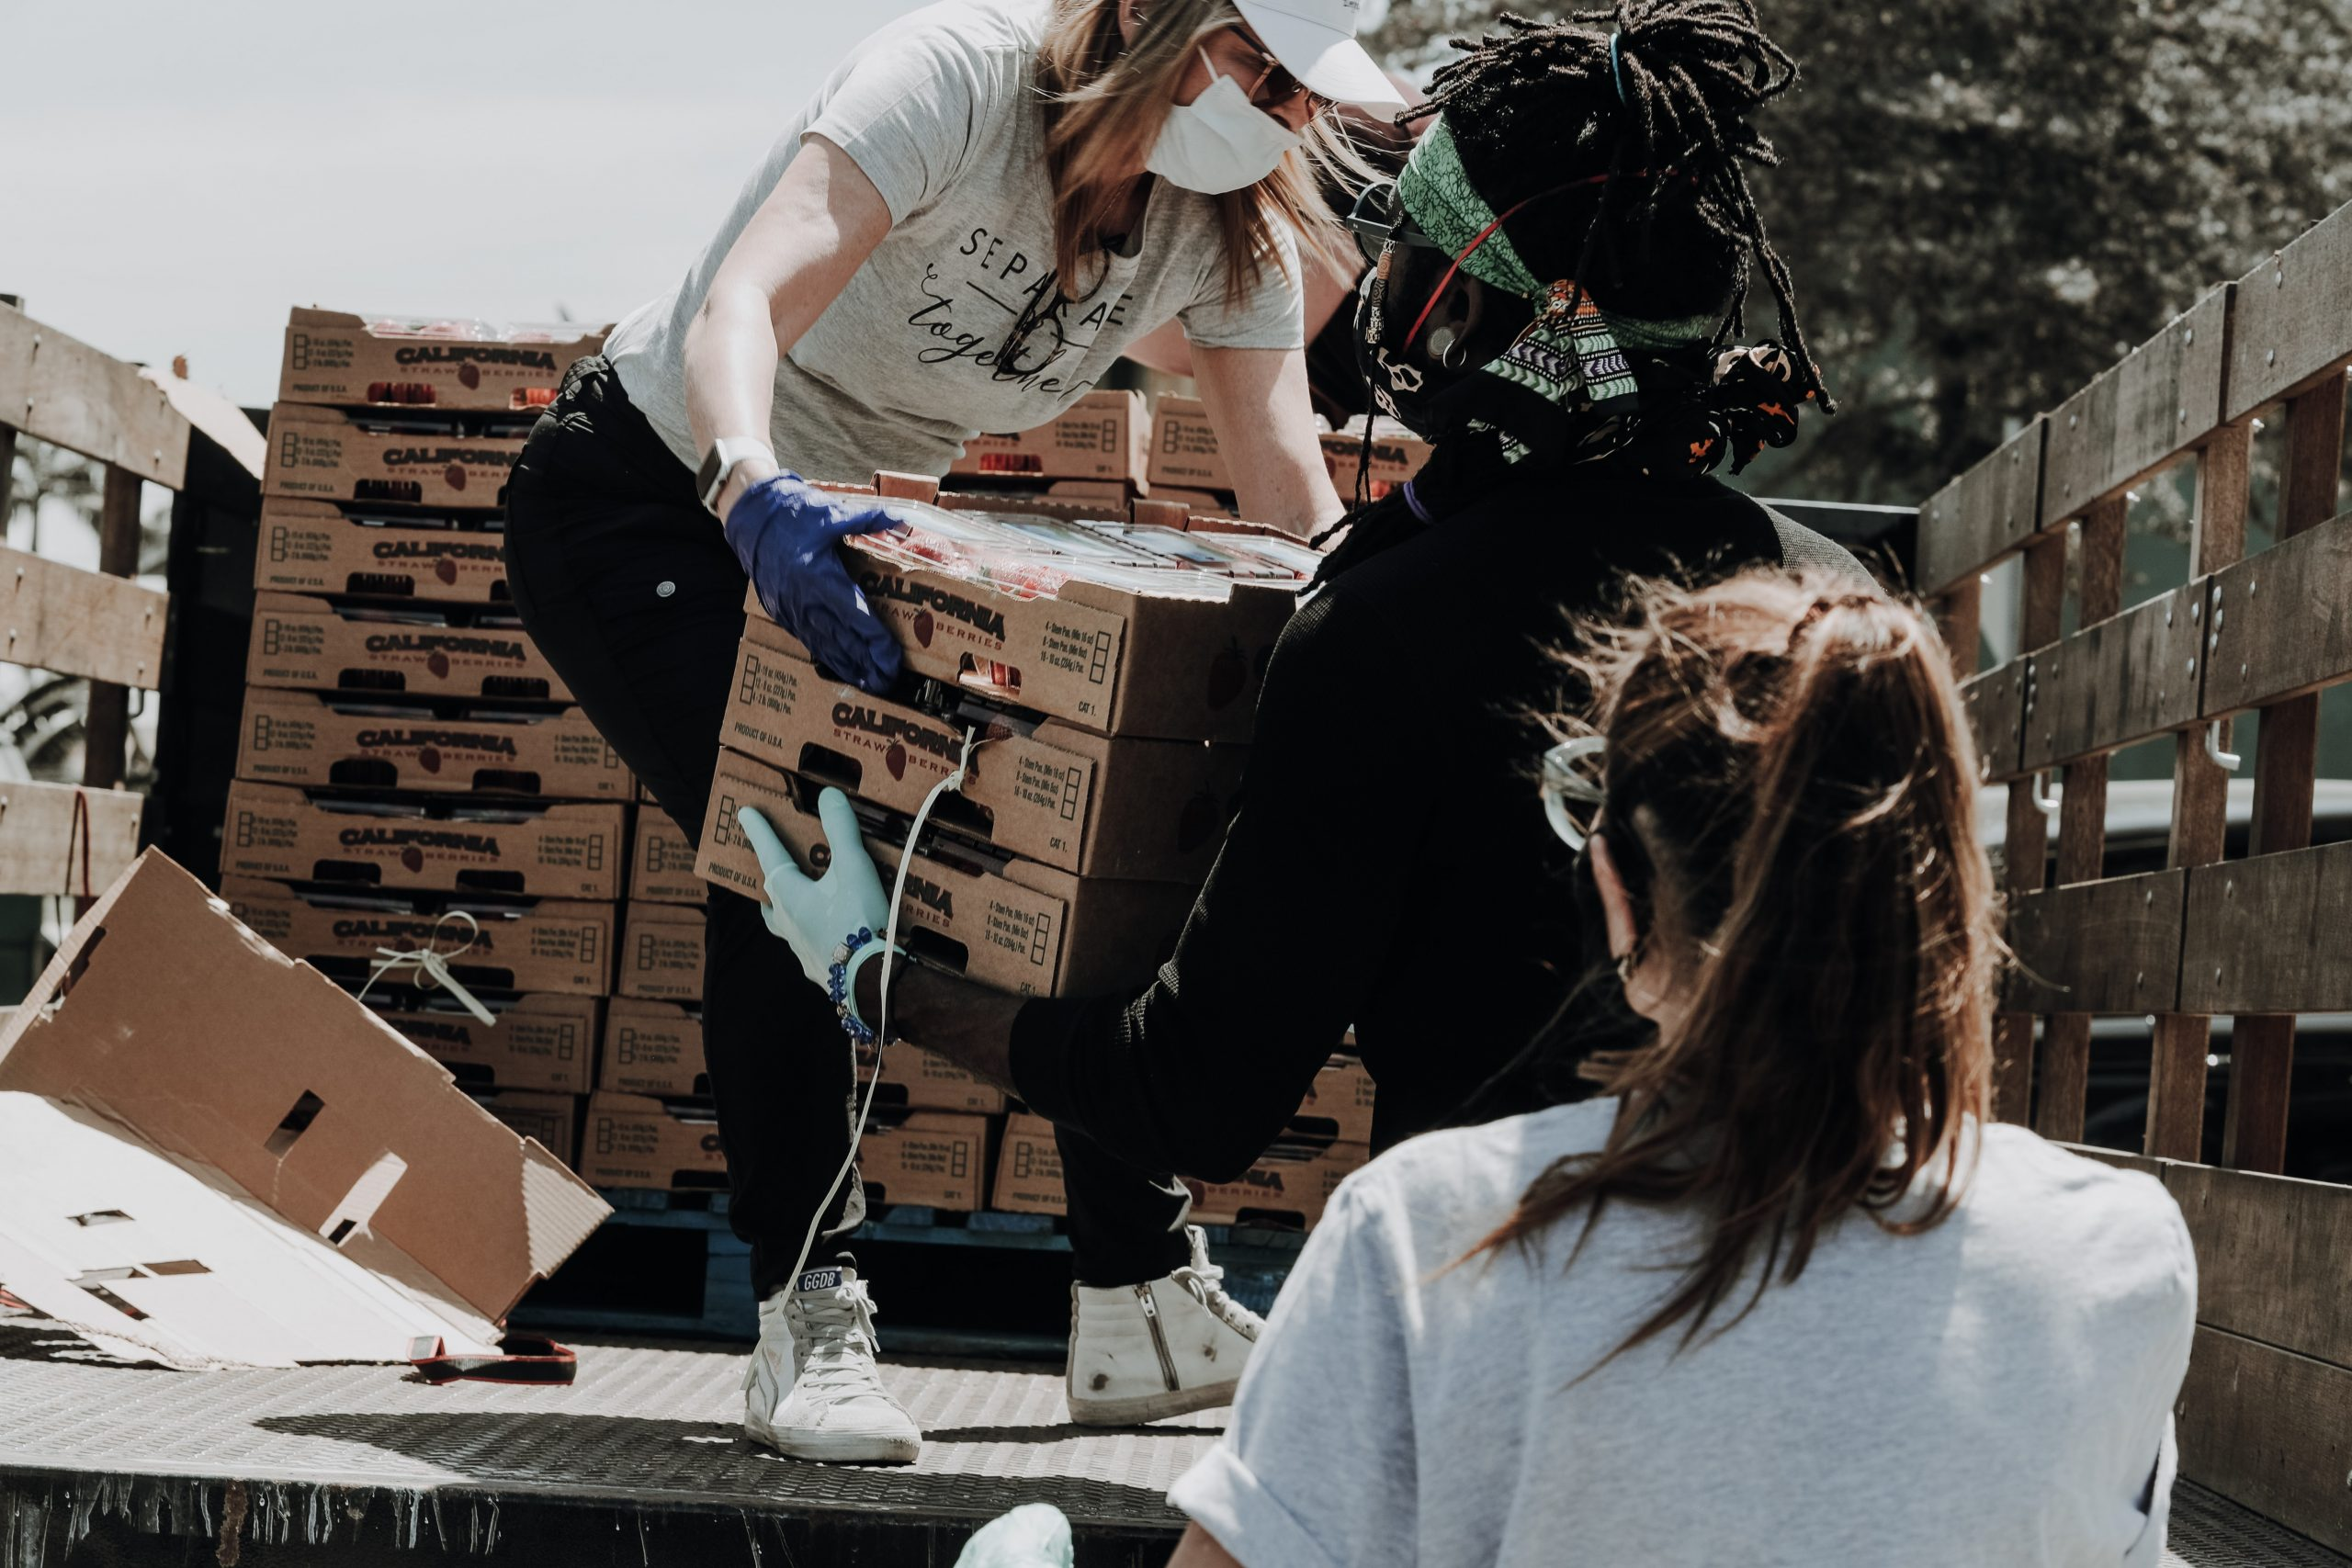 people helping unload boxes from truck for charity